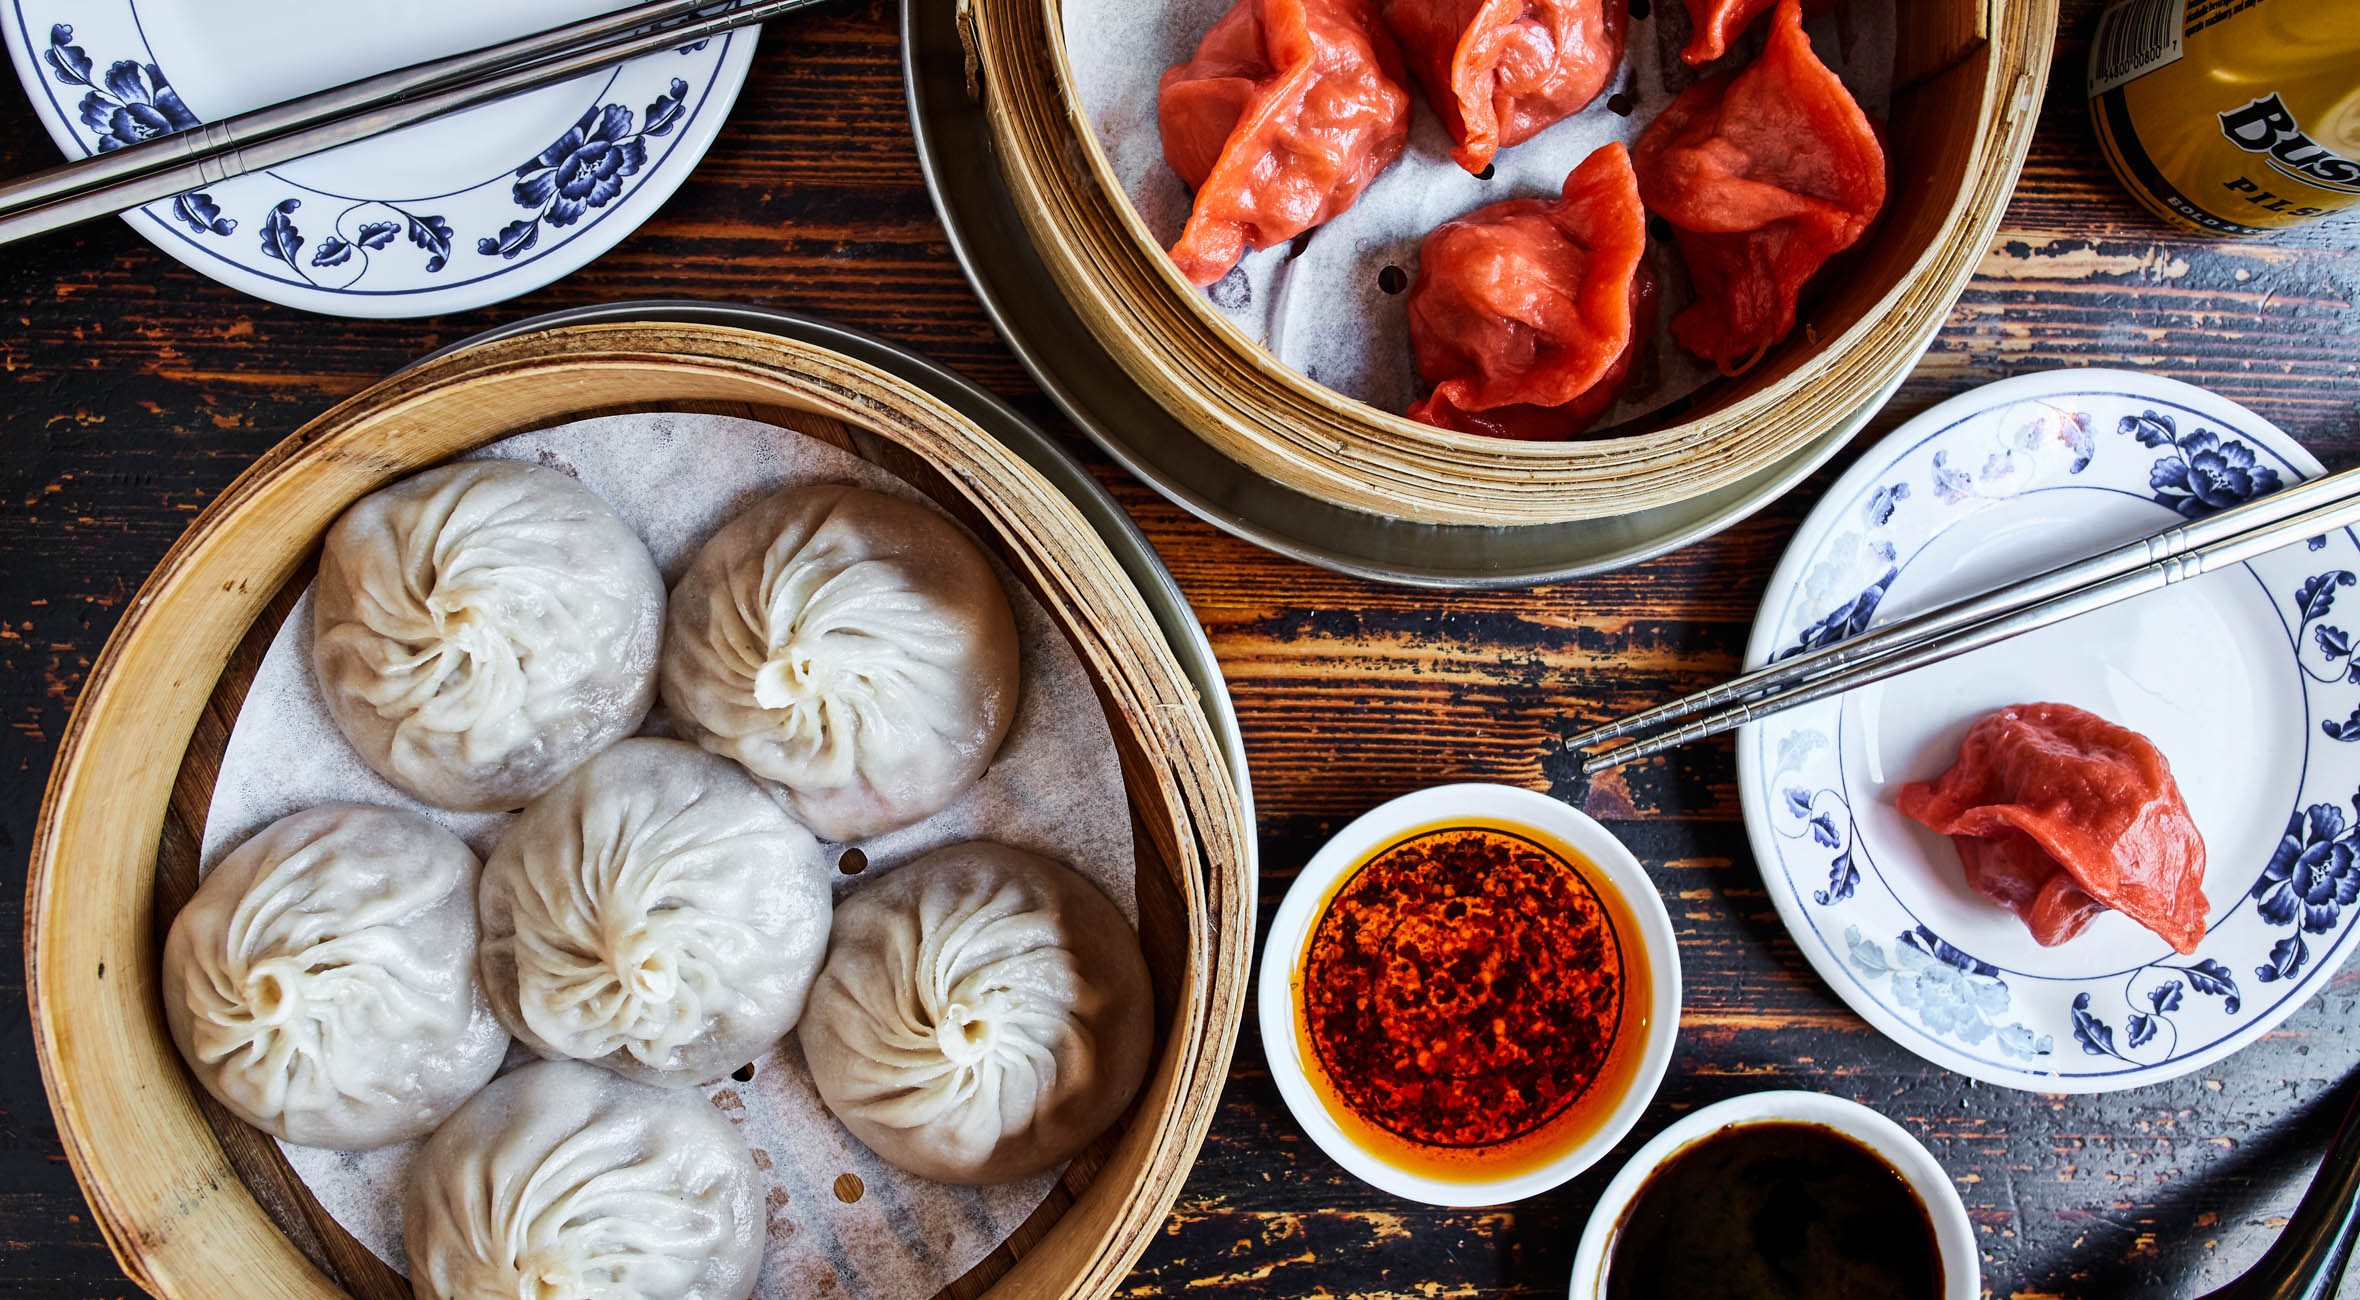 Dumpling Feast with Drinks for 2 People at Drunken Dumpling in East Village – One of NYC's Best Dumpling Joints